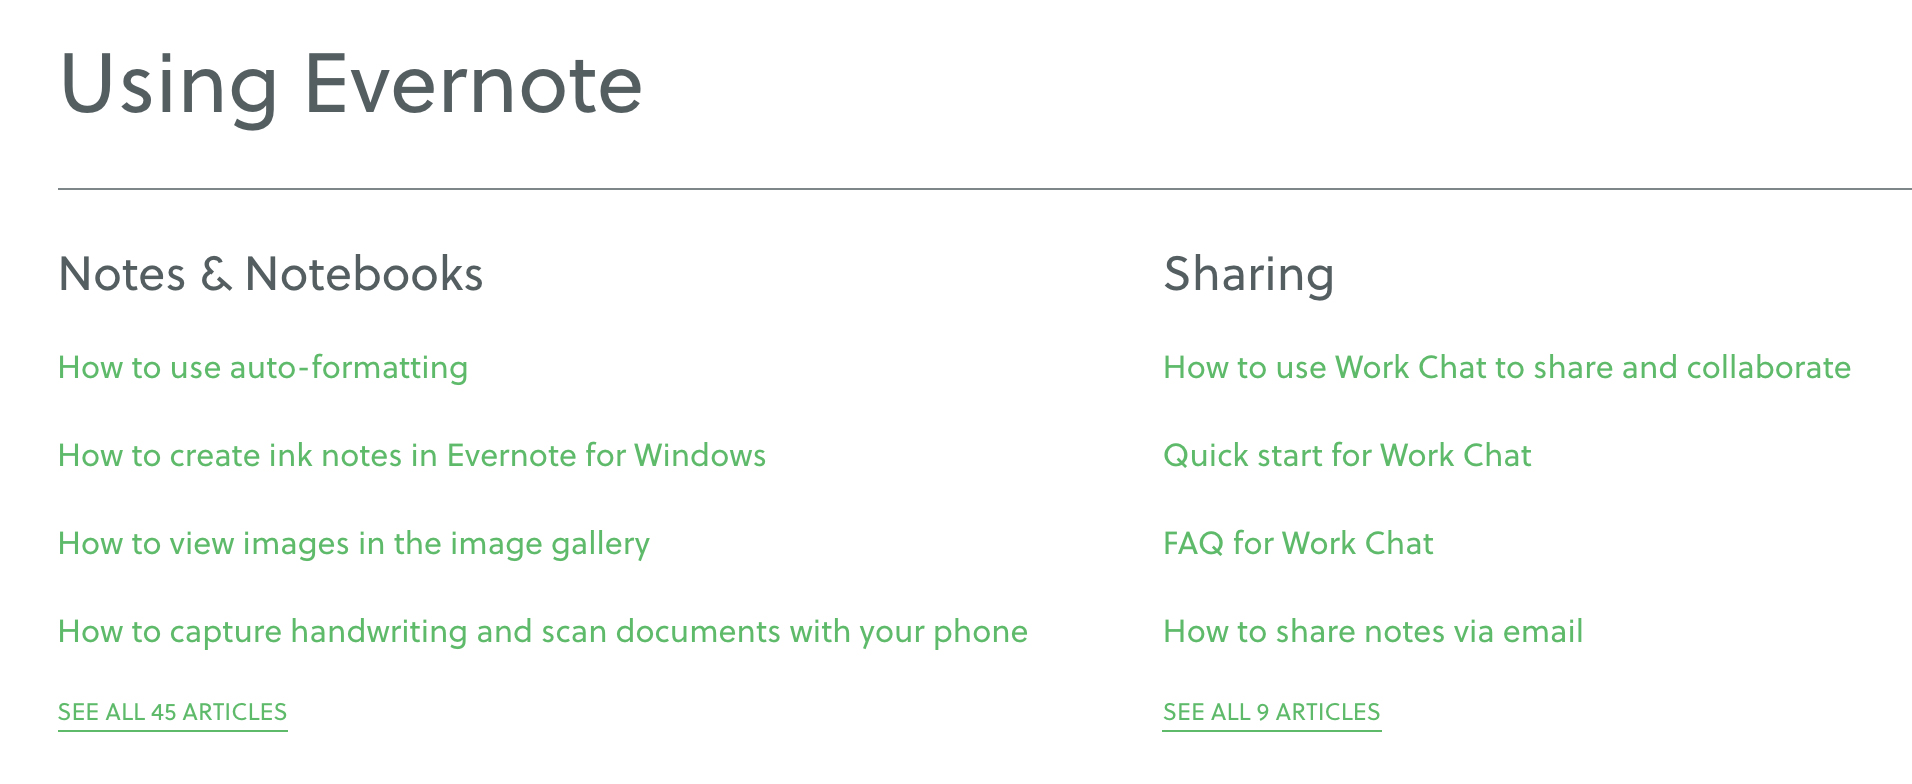 Using Evernote section of Help & Learning